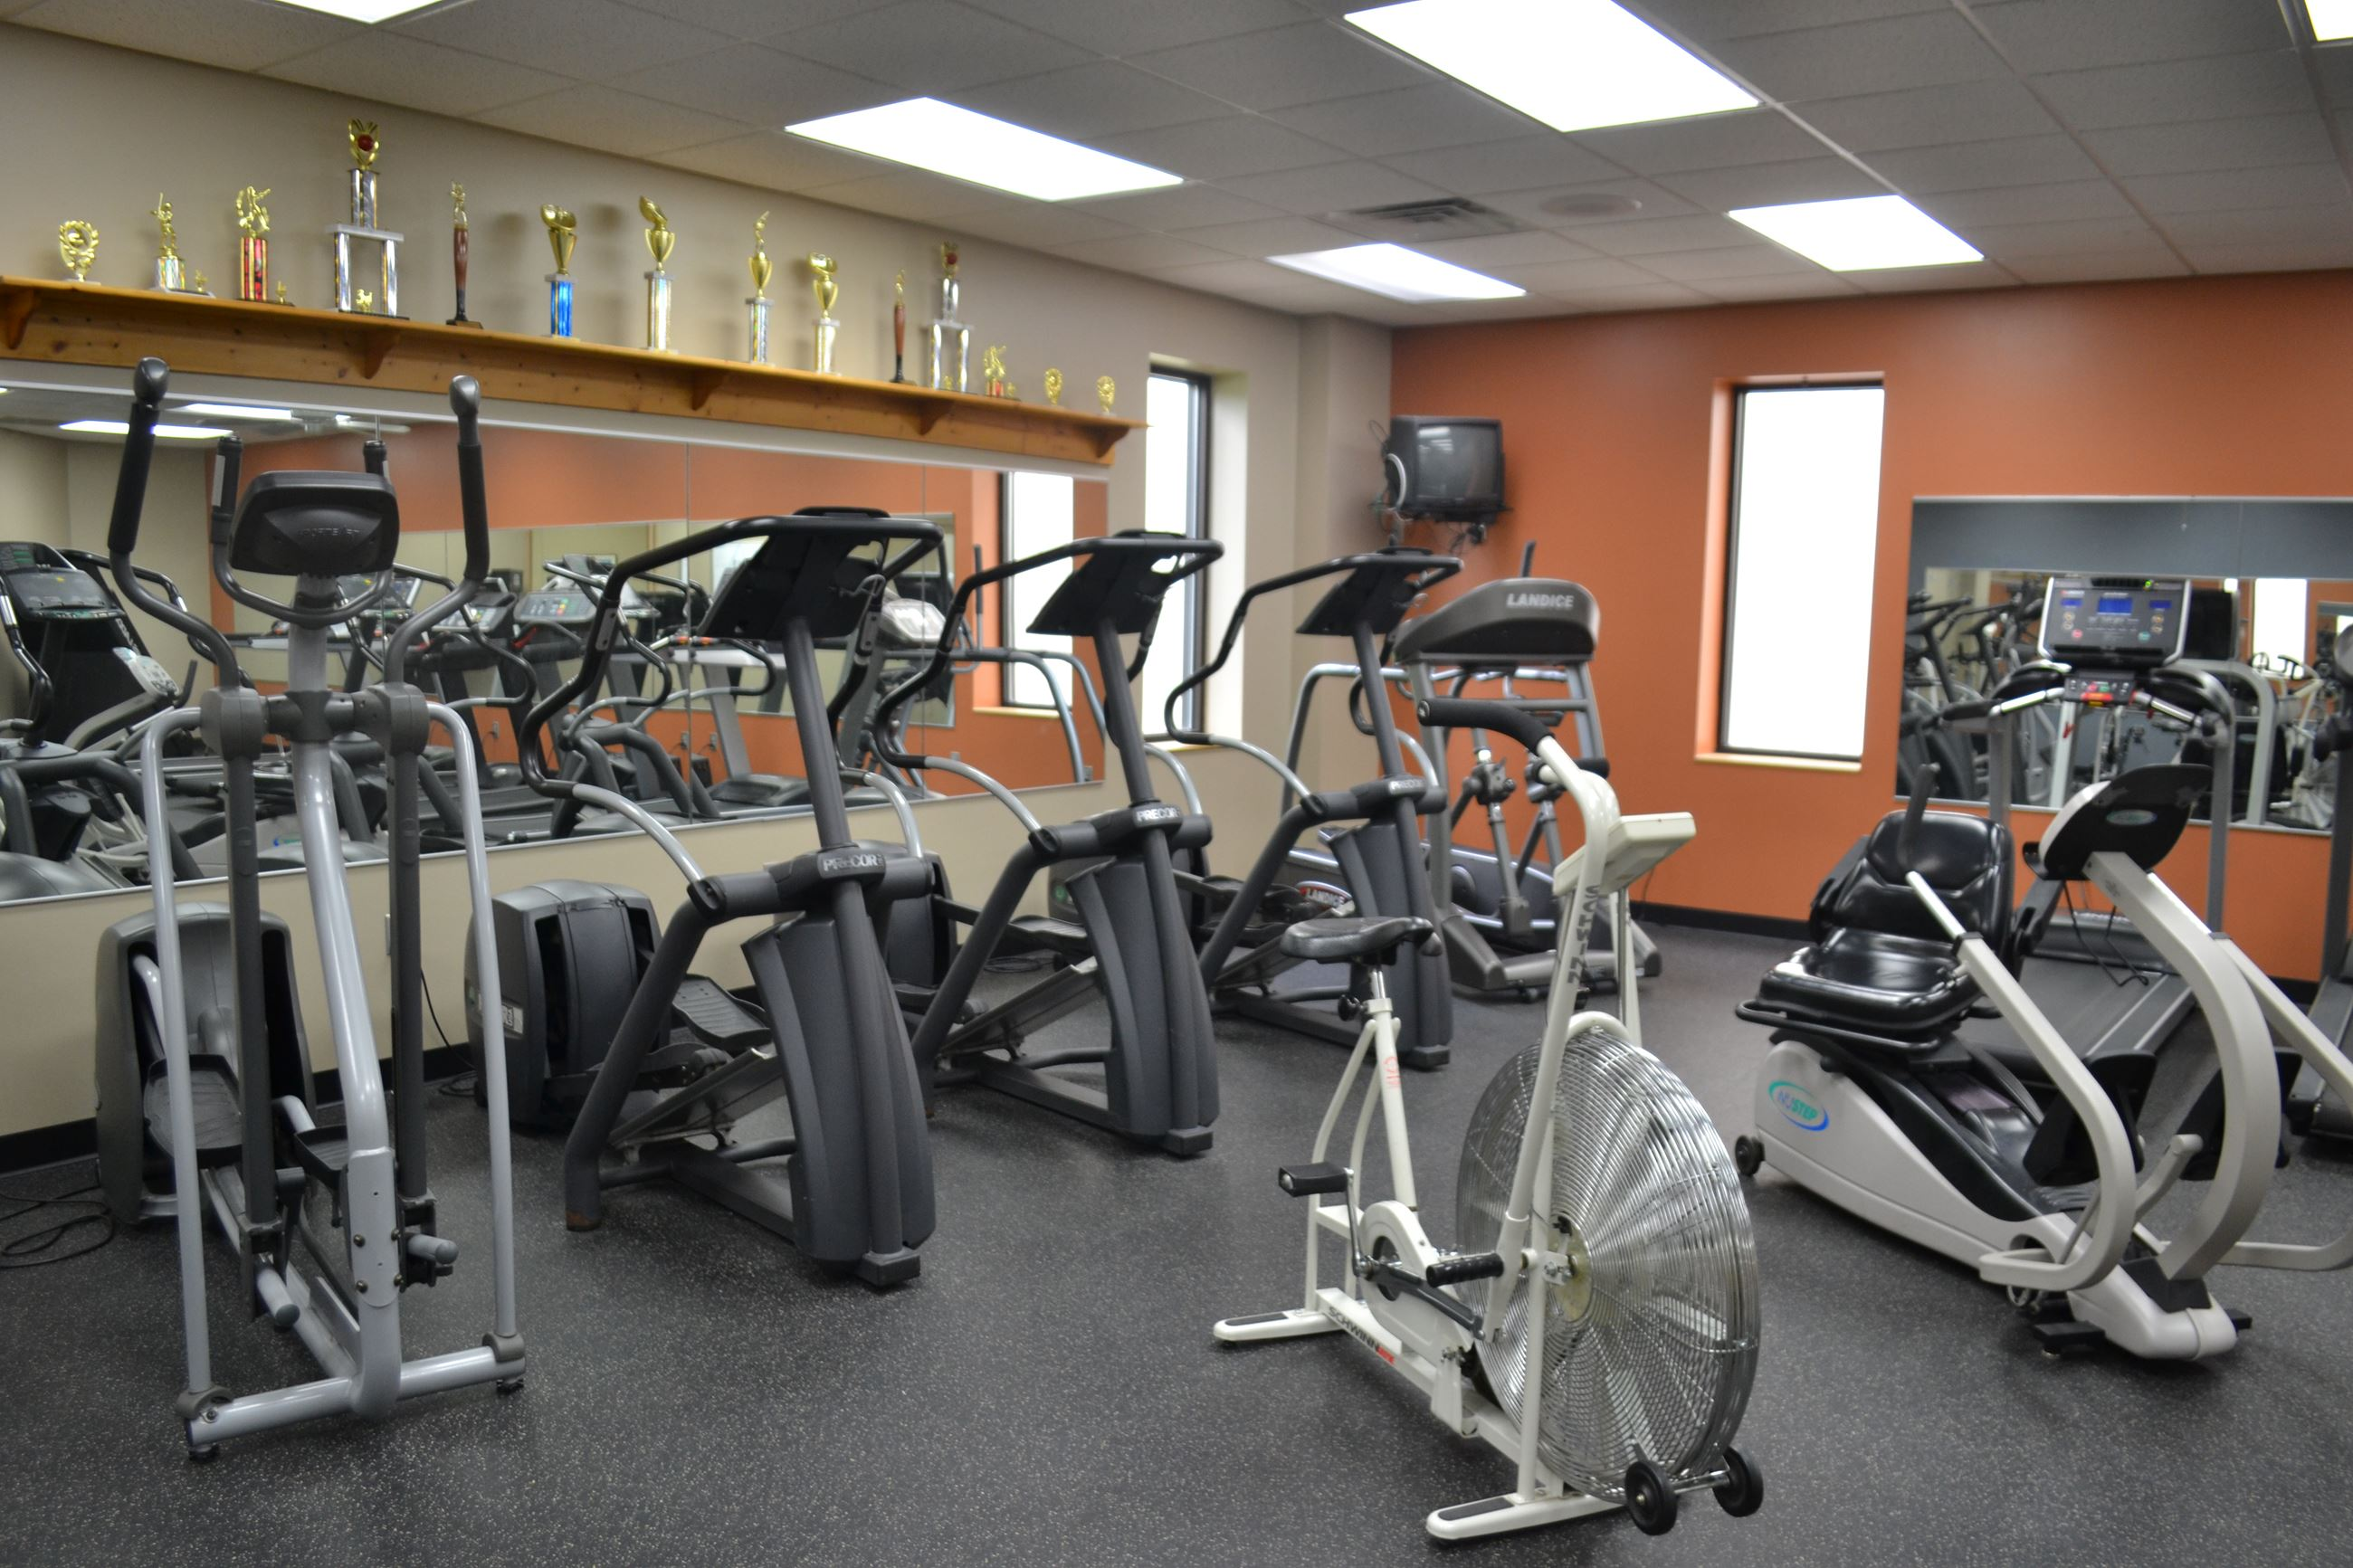 Cardio Room Bikes and Elipticals